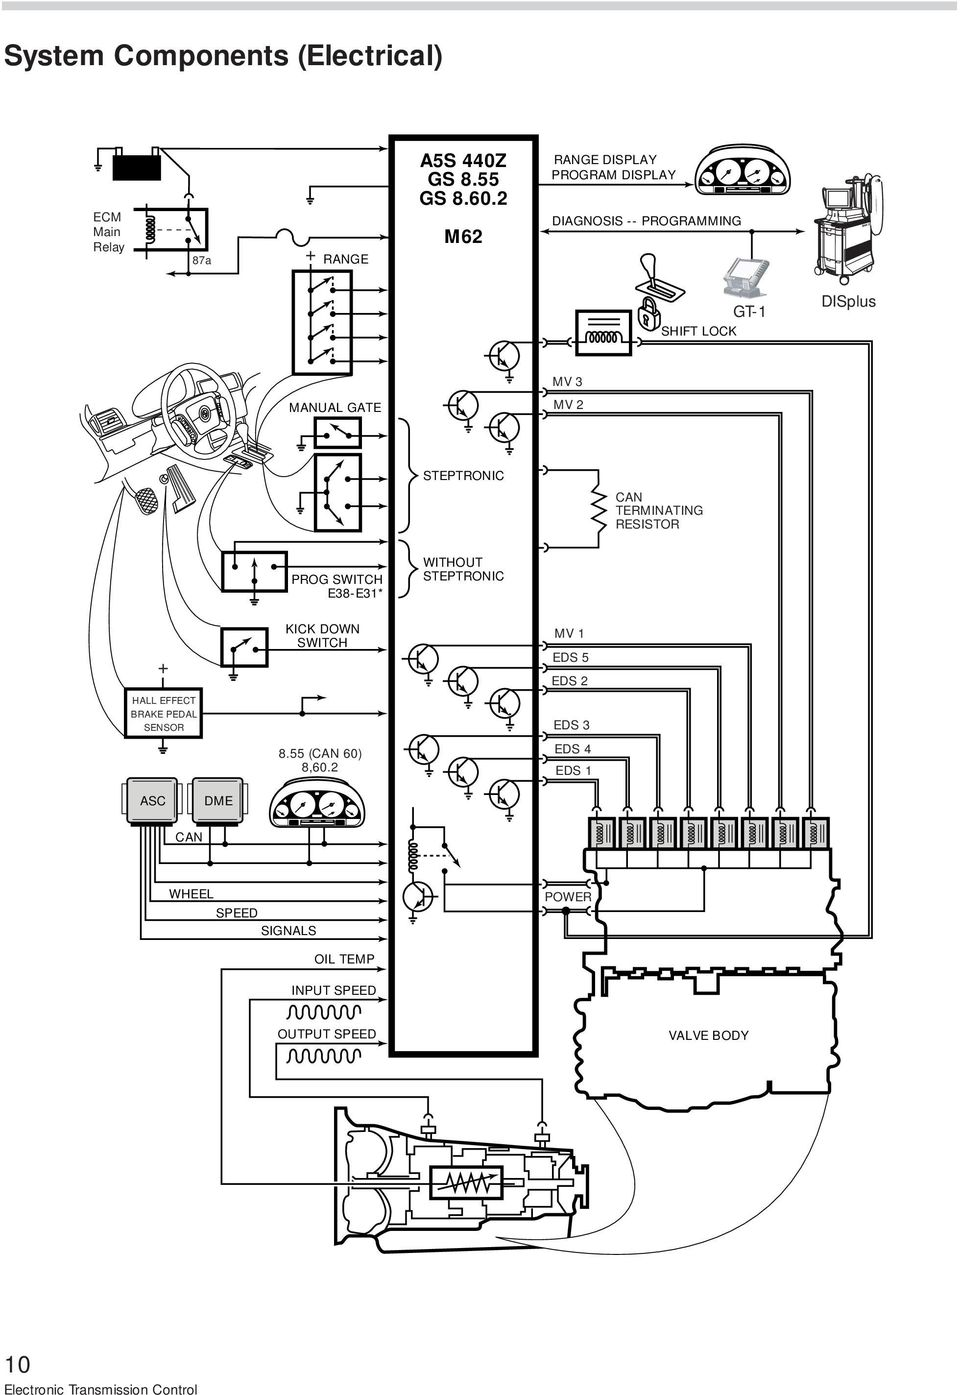 r gs wiring diagram expert diagrams bmw harness enthusiast